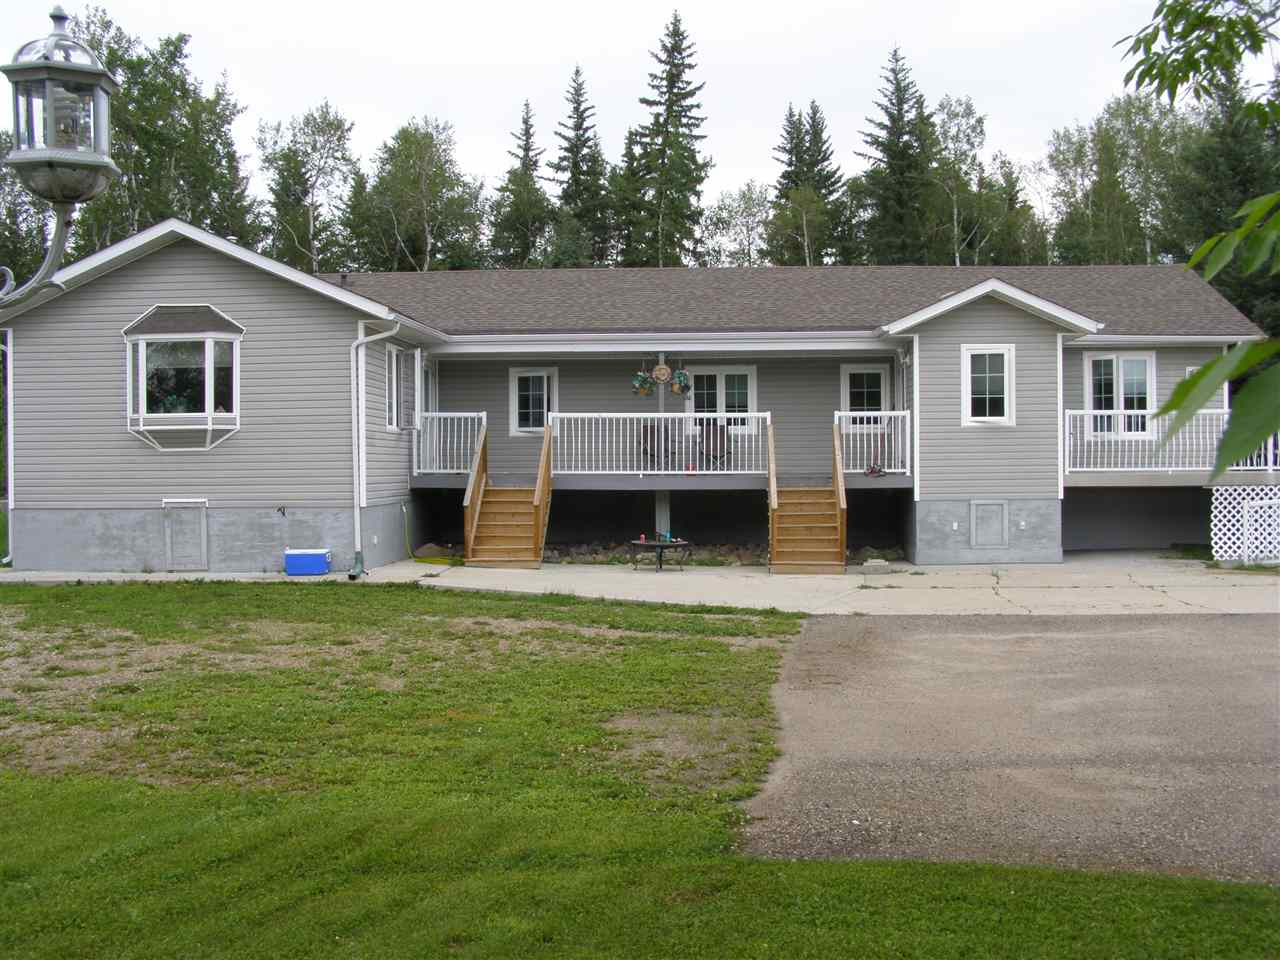 Tucked away on 4.97 very private acres sits this 2150 square foot home just 10 minutes west of Cold Lake off Hwy 55. Gorgeous kitchen has quartz countertops and stainless steel appliances. Large open concept living room/dining room has a handy propane stove with access to the huge deck and the beautiful setting outdoors. The palatial master bedroom has double doors to the ensuite with whirlpool tub and separate shower as well as access to the covered deck. Four additional bedrooms, a den (or kids playroom) and laundry area with quartz countertop/laundry sink complete the inside. Entire living space is on one floor, entrance has doors wide enough for a wheelchair and there is a ramp up to the side deck. The home has reverse osmosis water system and additions are on a heated concrete crawl space. Outside there are 2 large powered sheds (16x18 shed had hookups for heat and 20x24 shed has cabinets), fire pit area, beautiful trees and concrete parking area. Great location, priced right and picture perfect!